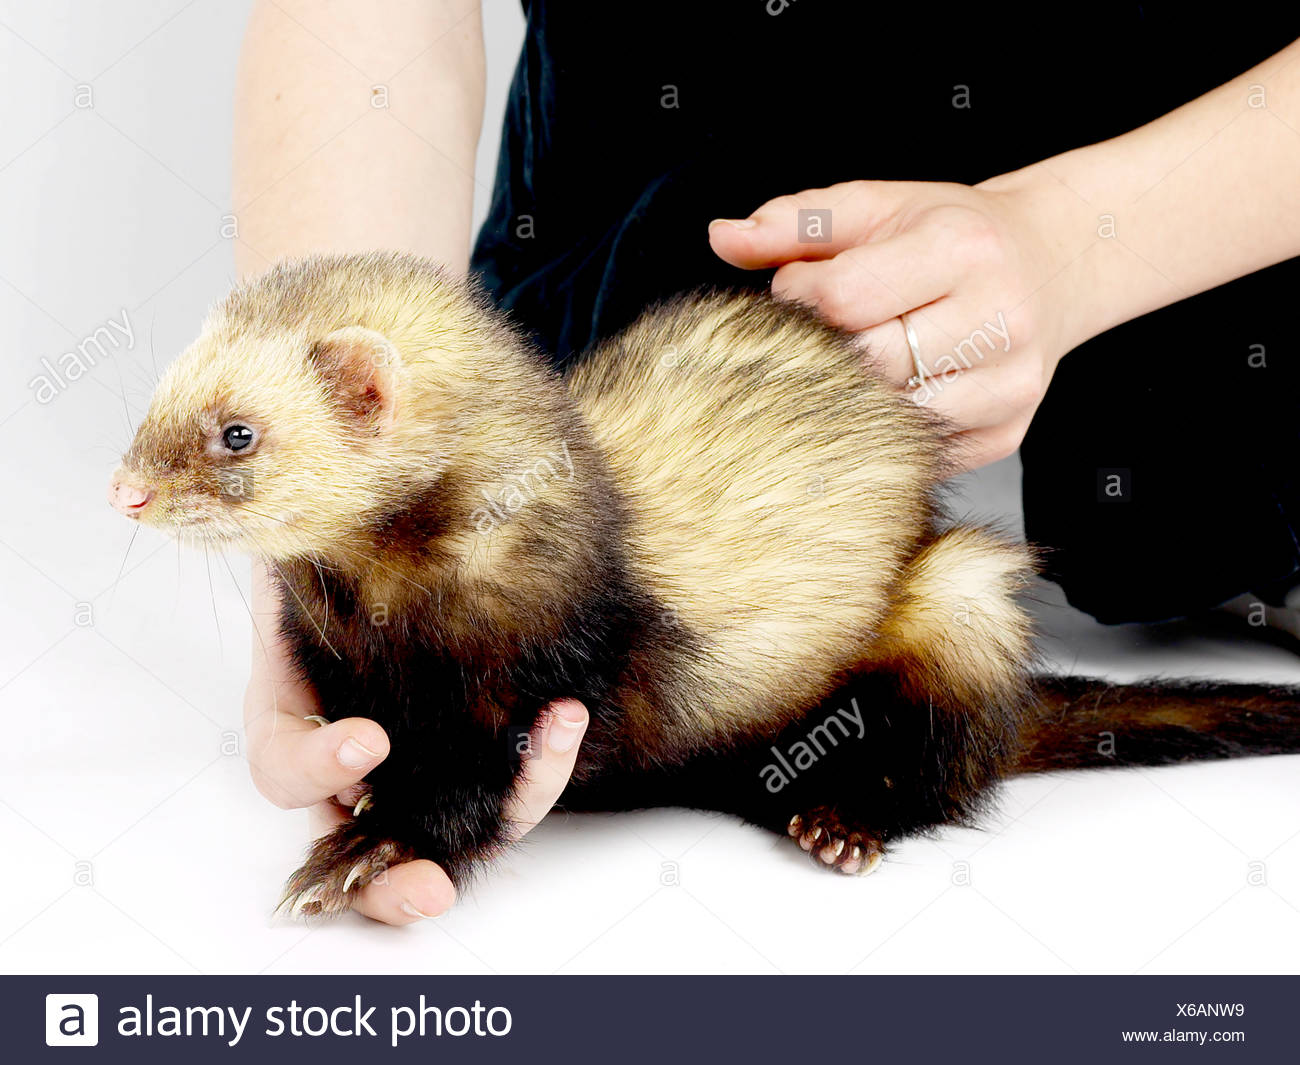 A small young ferret being held. - Stock Image